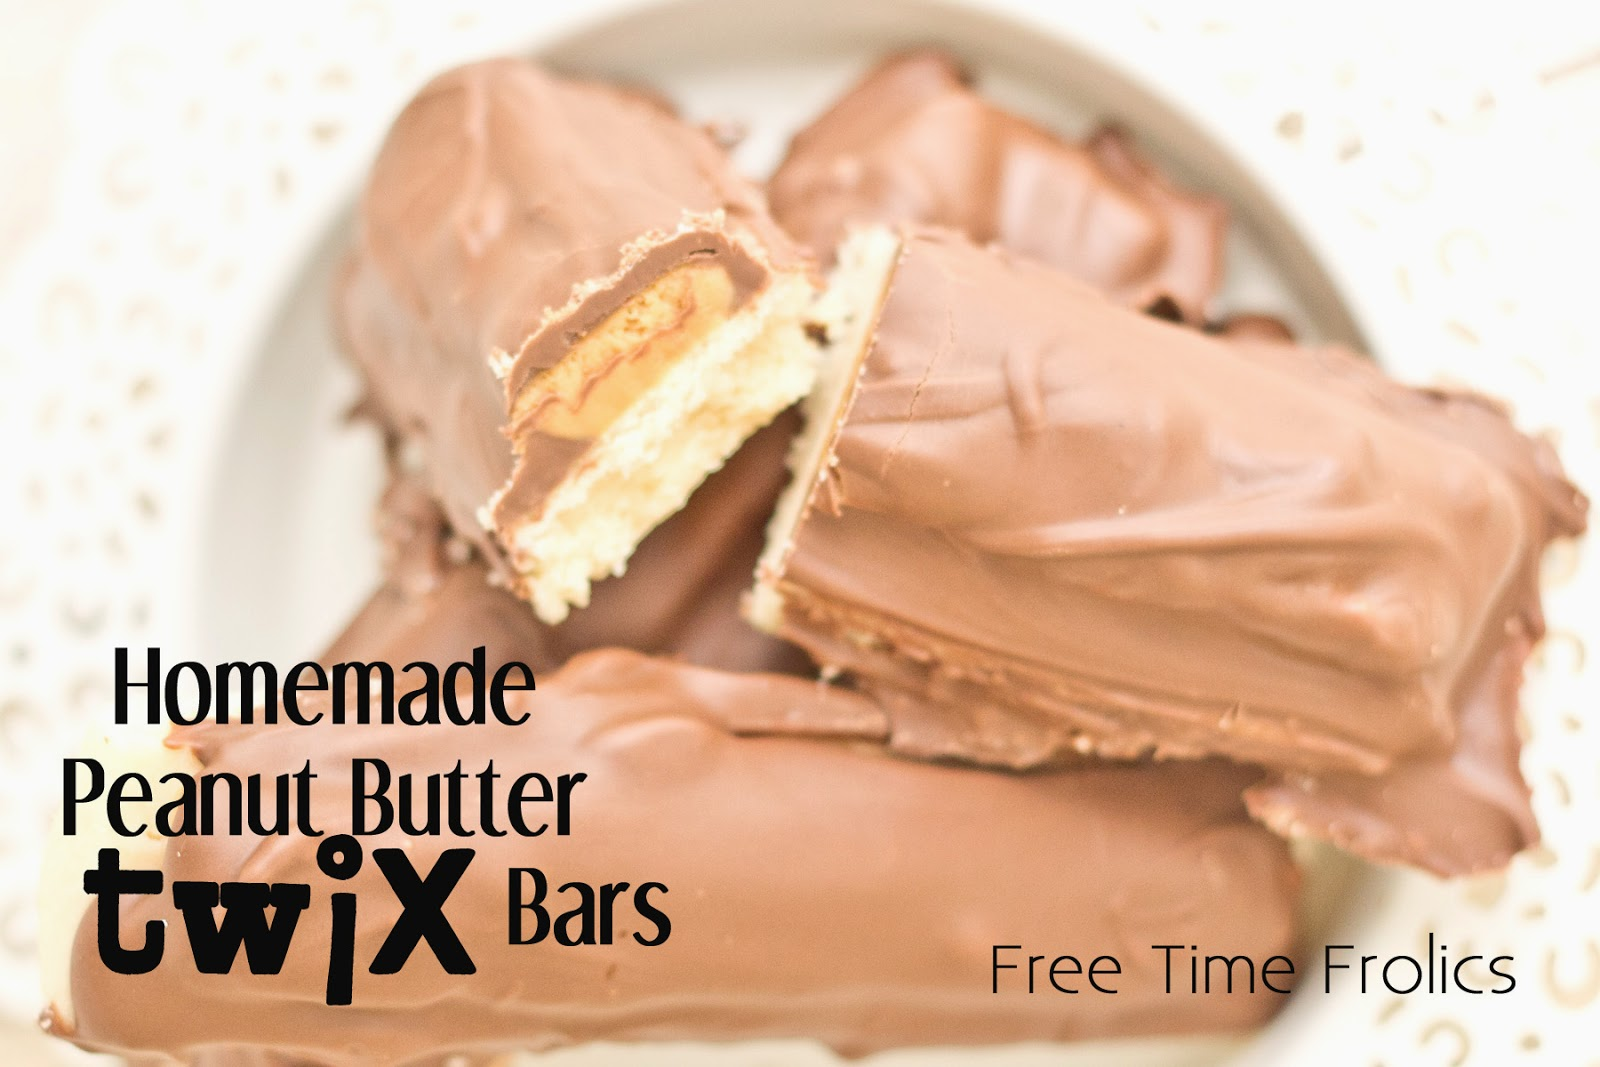 Homemade Peanut Butter Twix www.freetimefrolics.com #recipe